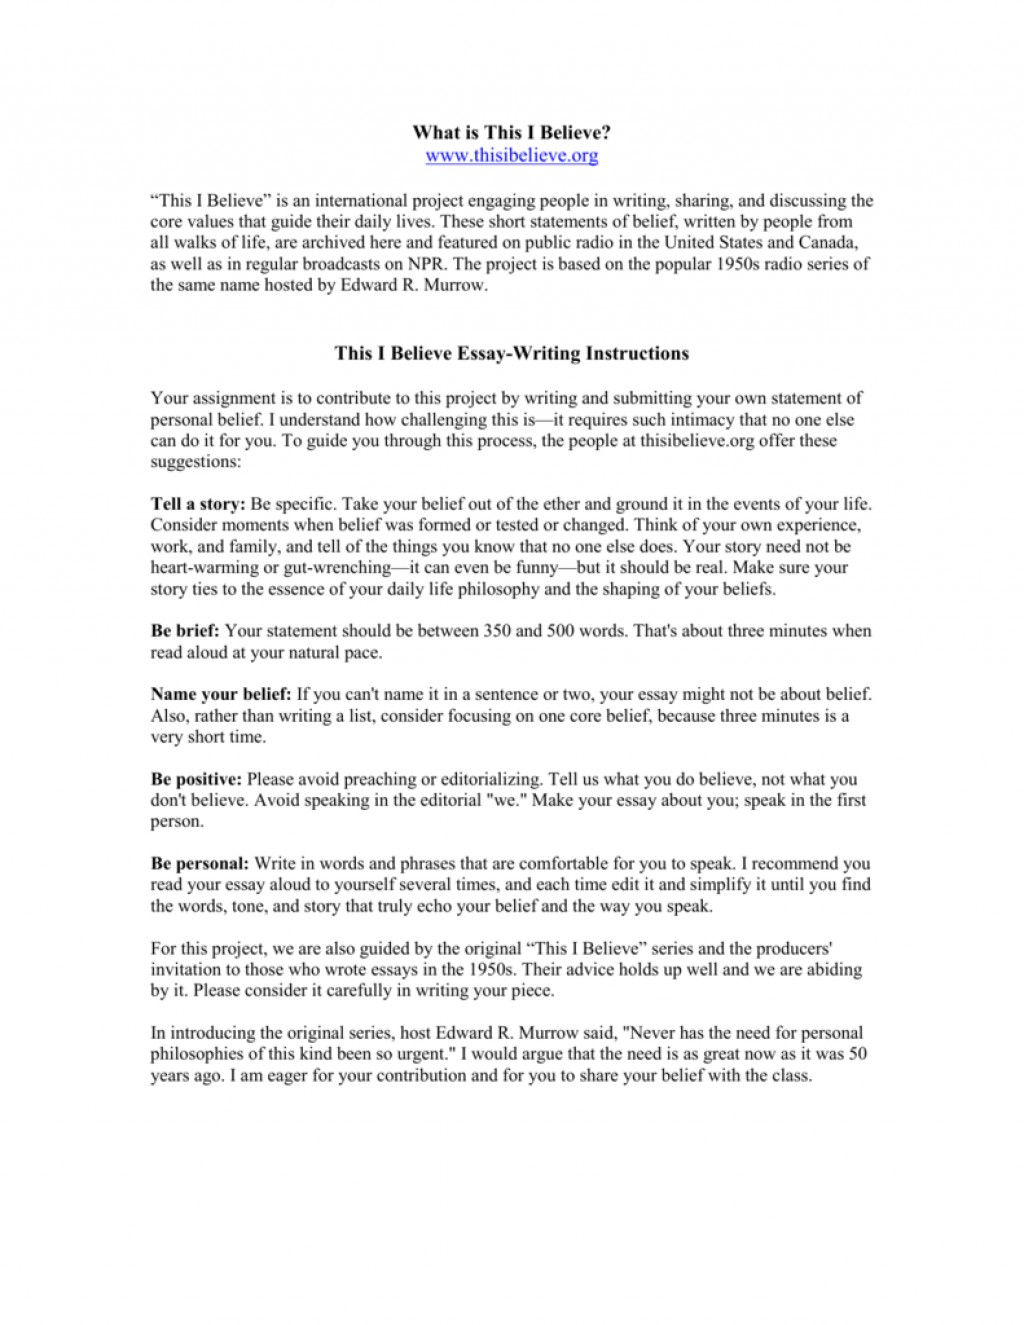 009 Essay Example How To Write This I Believe 008807226 1 Fantastic A Things On What Large